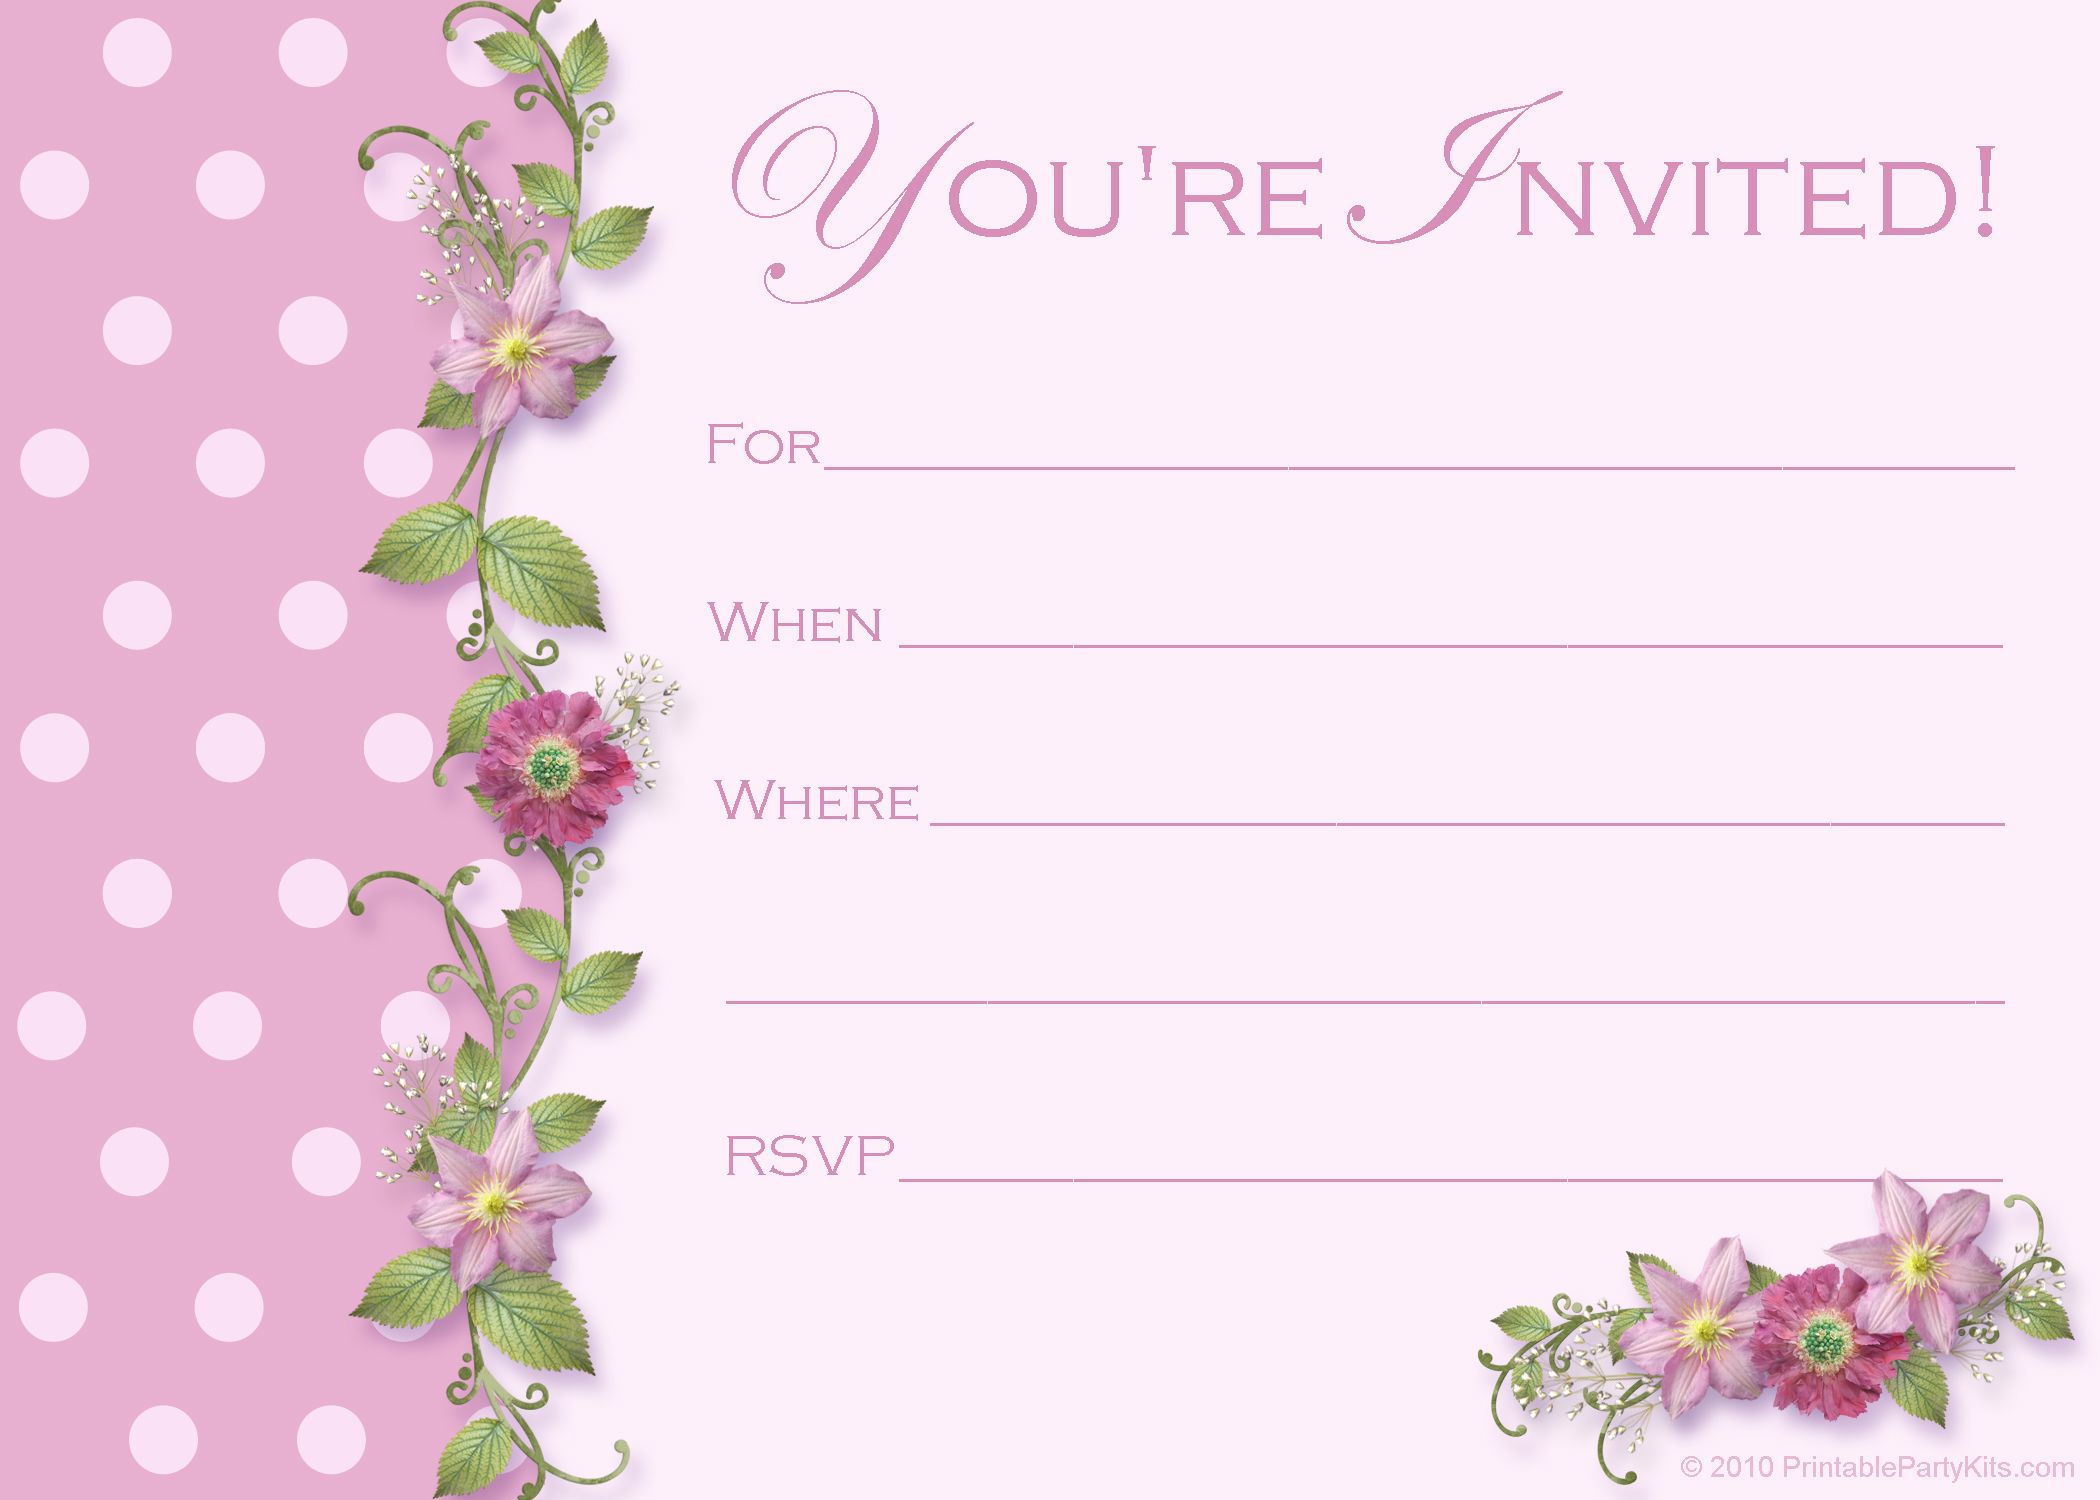 free printable sweet 16 birthday party invitations ; 6771354e314898ec07be7f55c5d5a71f